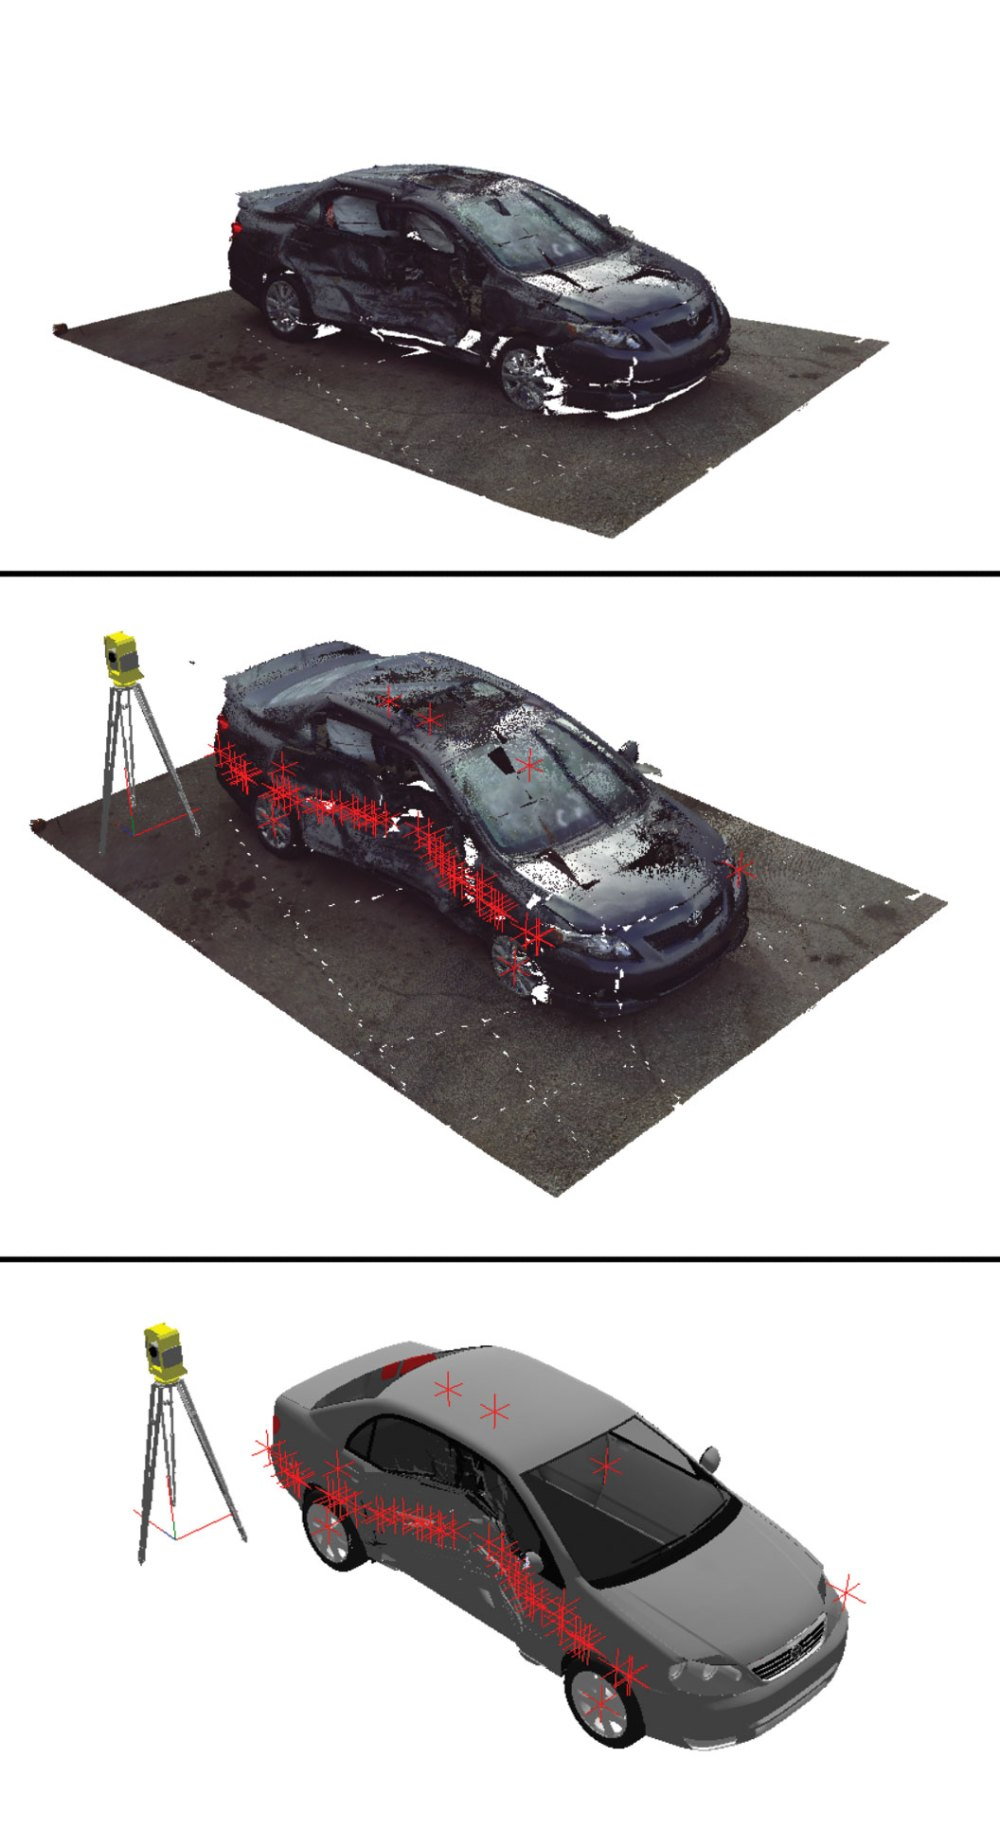 medium resolution of using photographs of an actual car accident a 3d digital reconstruction of the damaged vehicle